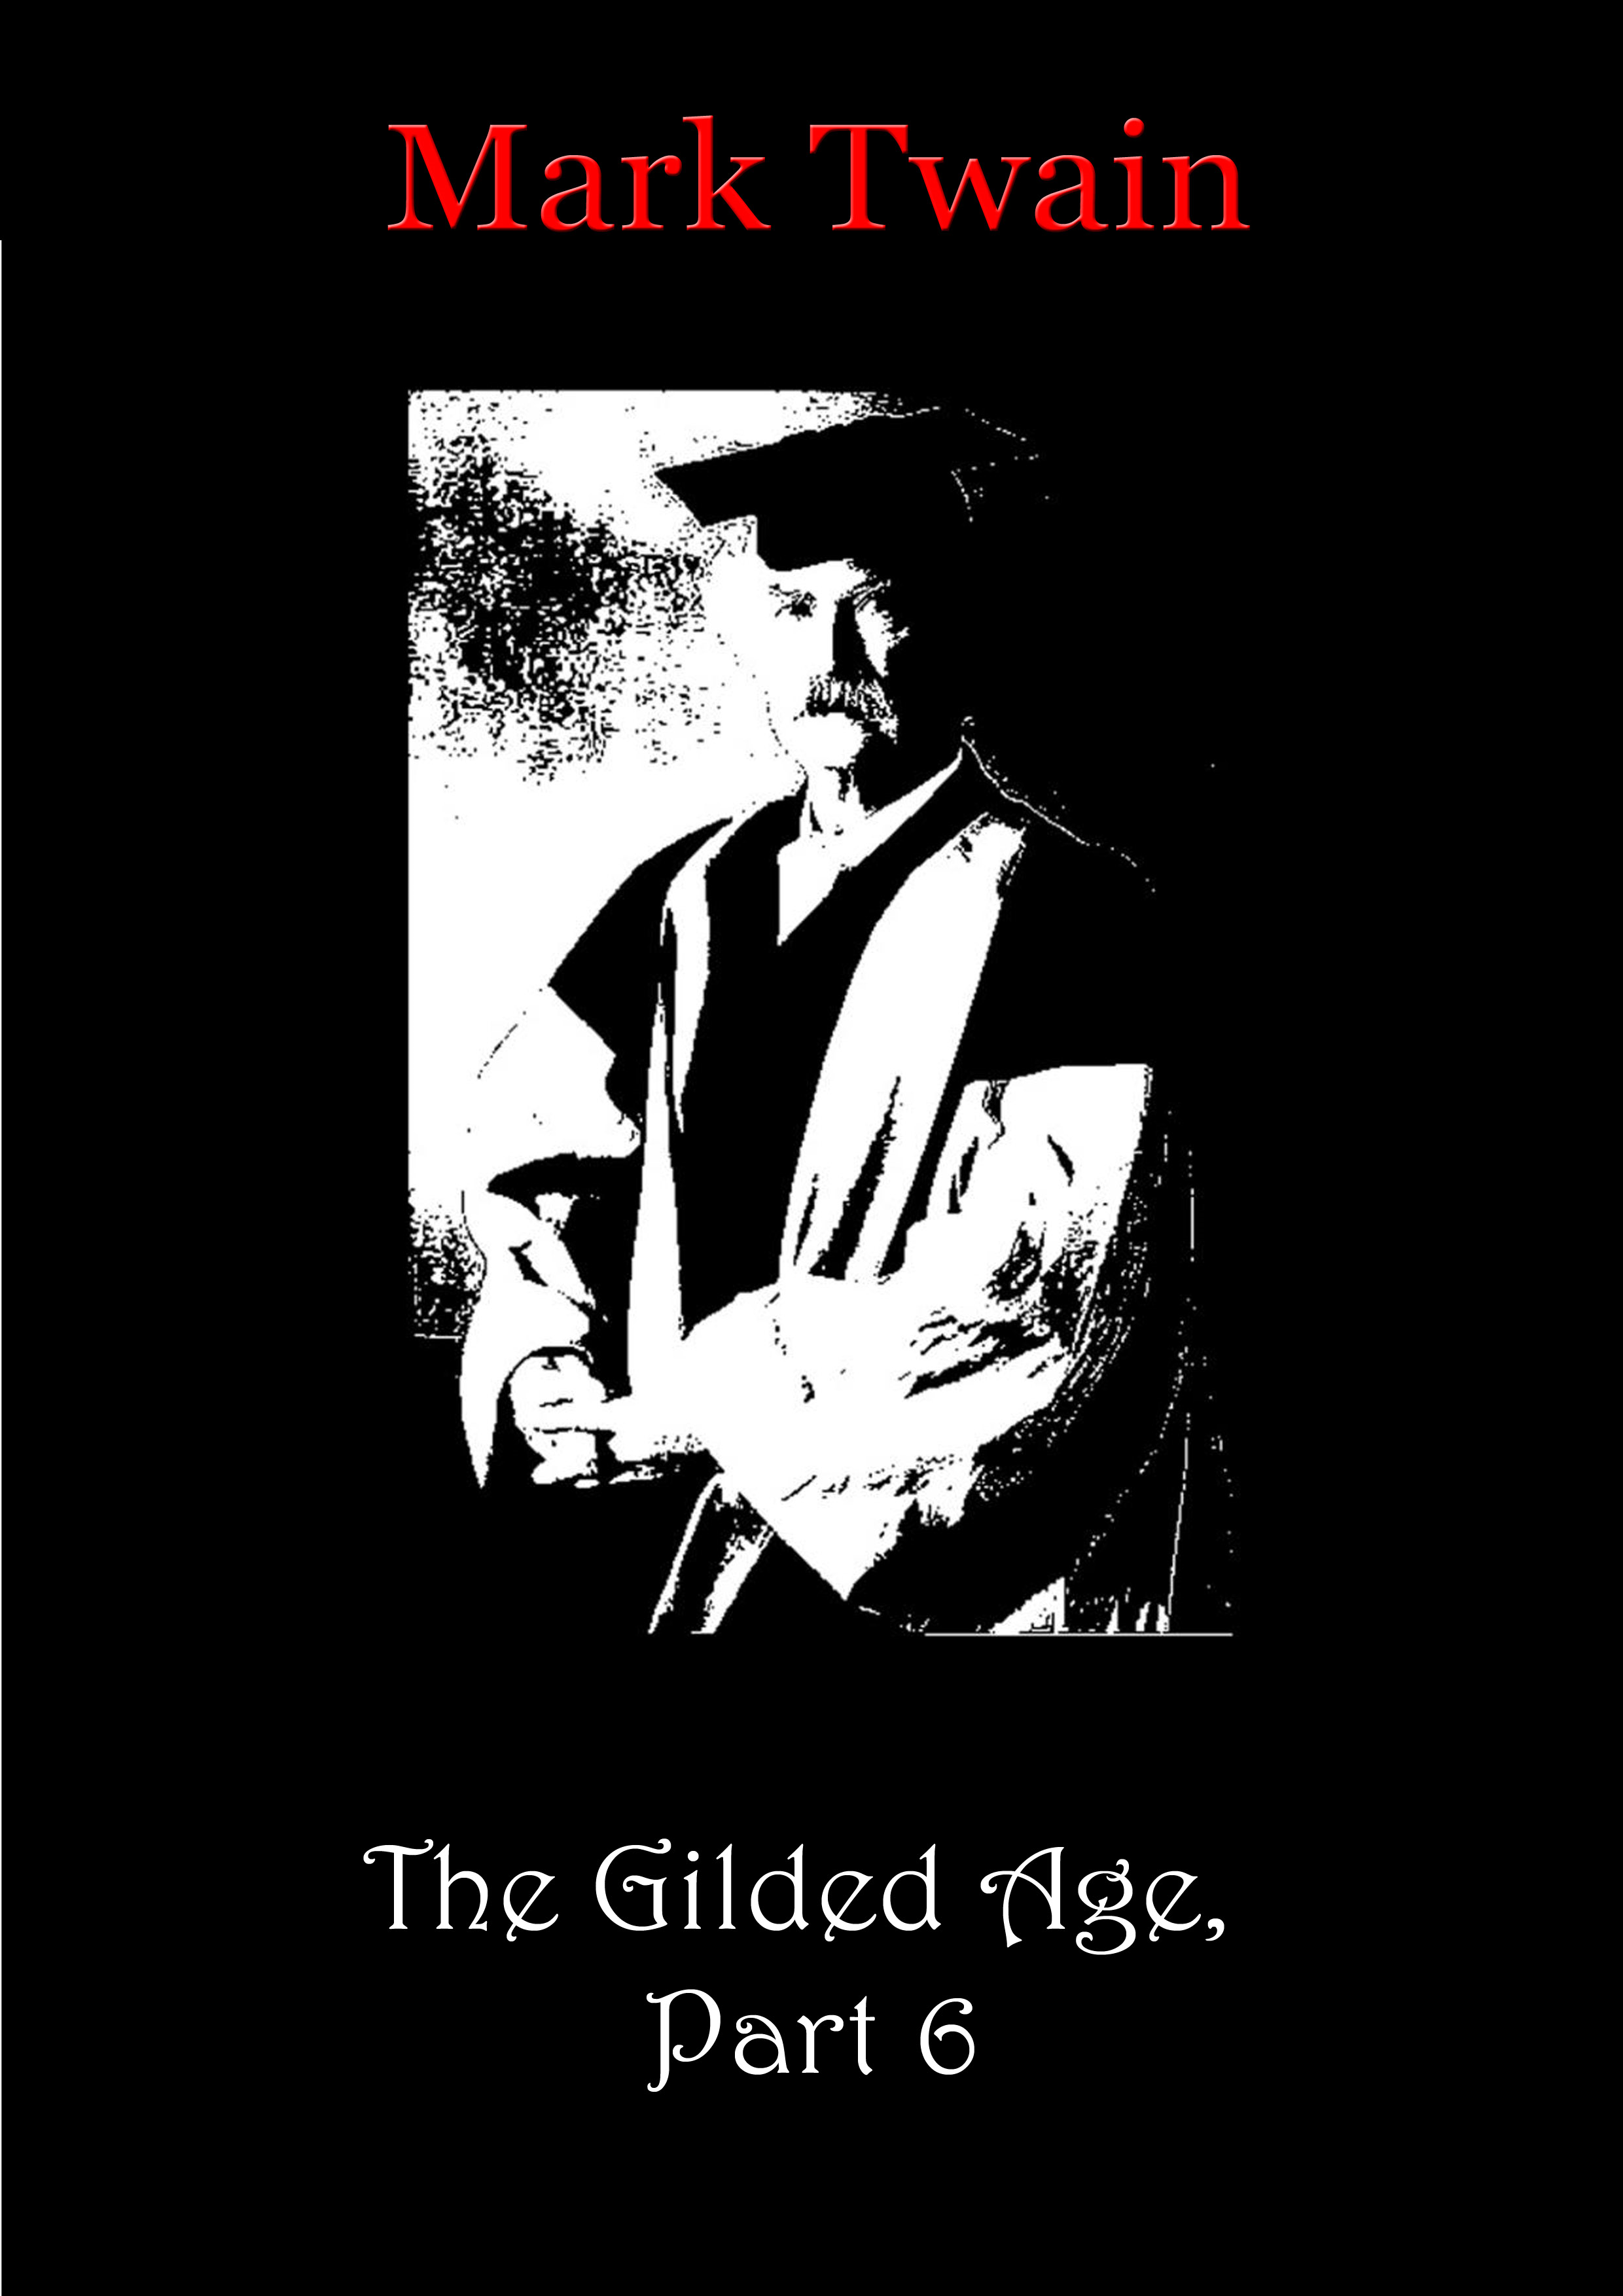 The Gilded Age, Part 6 By: Mark Twain